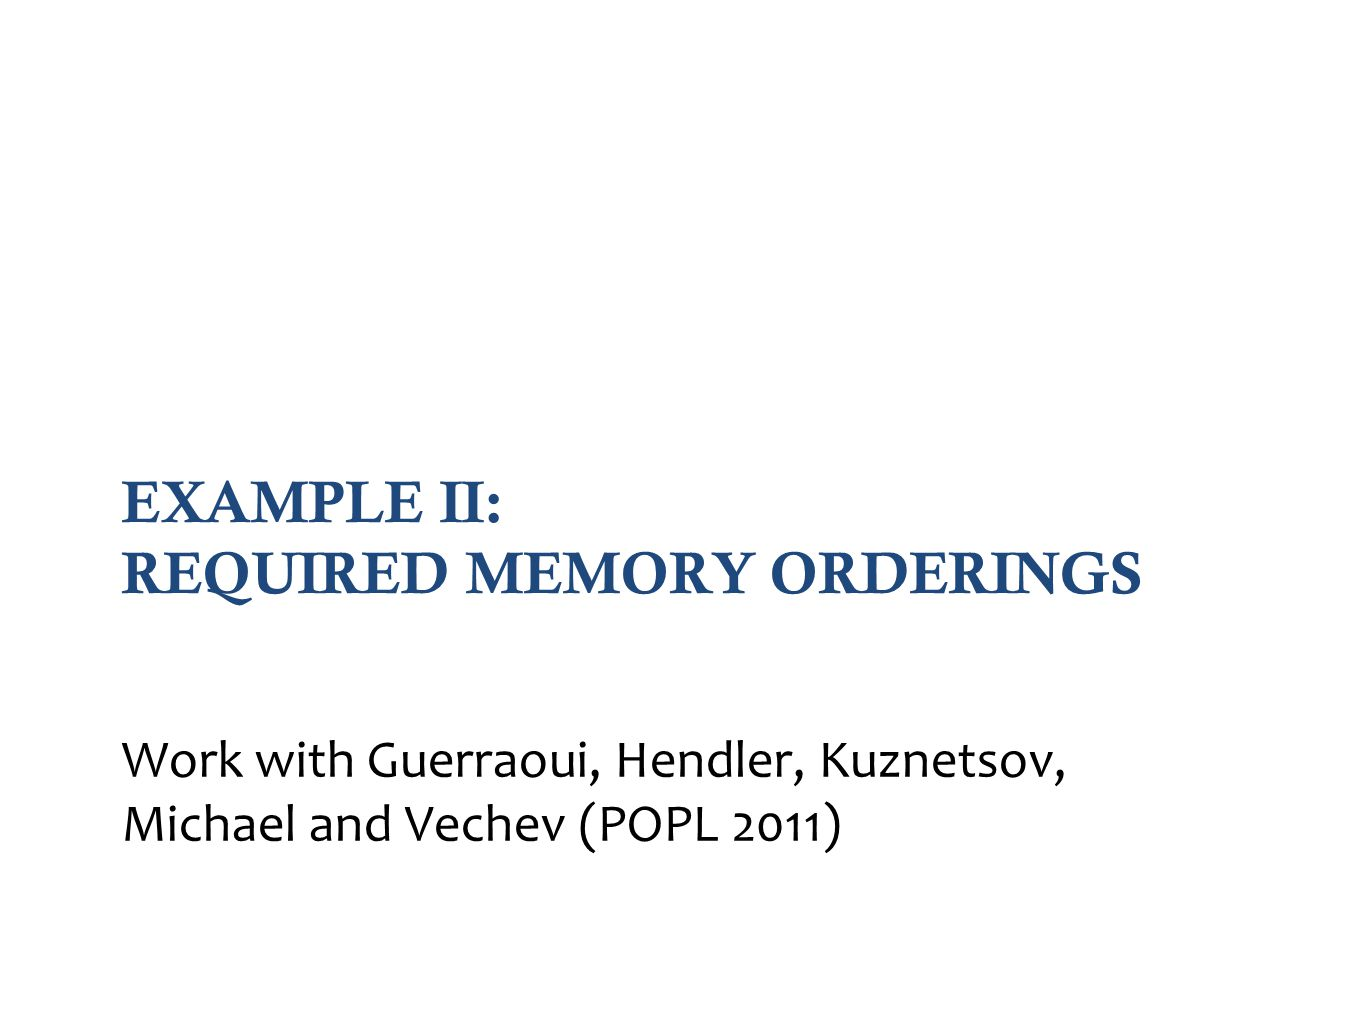 EXAMPLE II: REQUIRED MEMORY ORDERINGS Work with Guerraoui, Hendler, Kuznetsov, Michael and Vechev (POPL 2011)